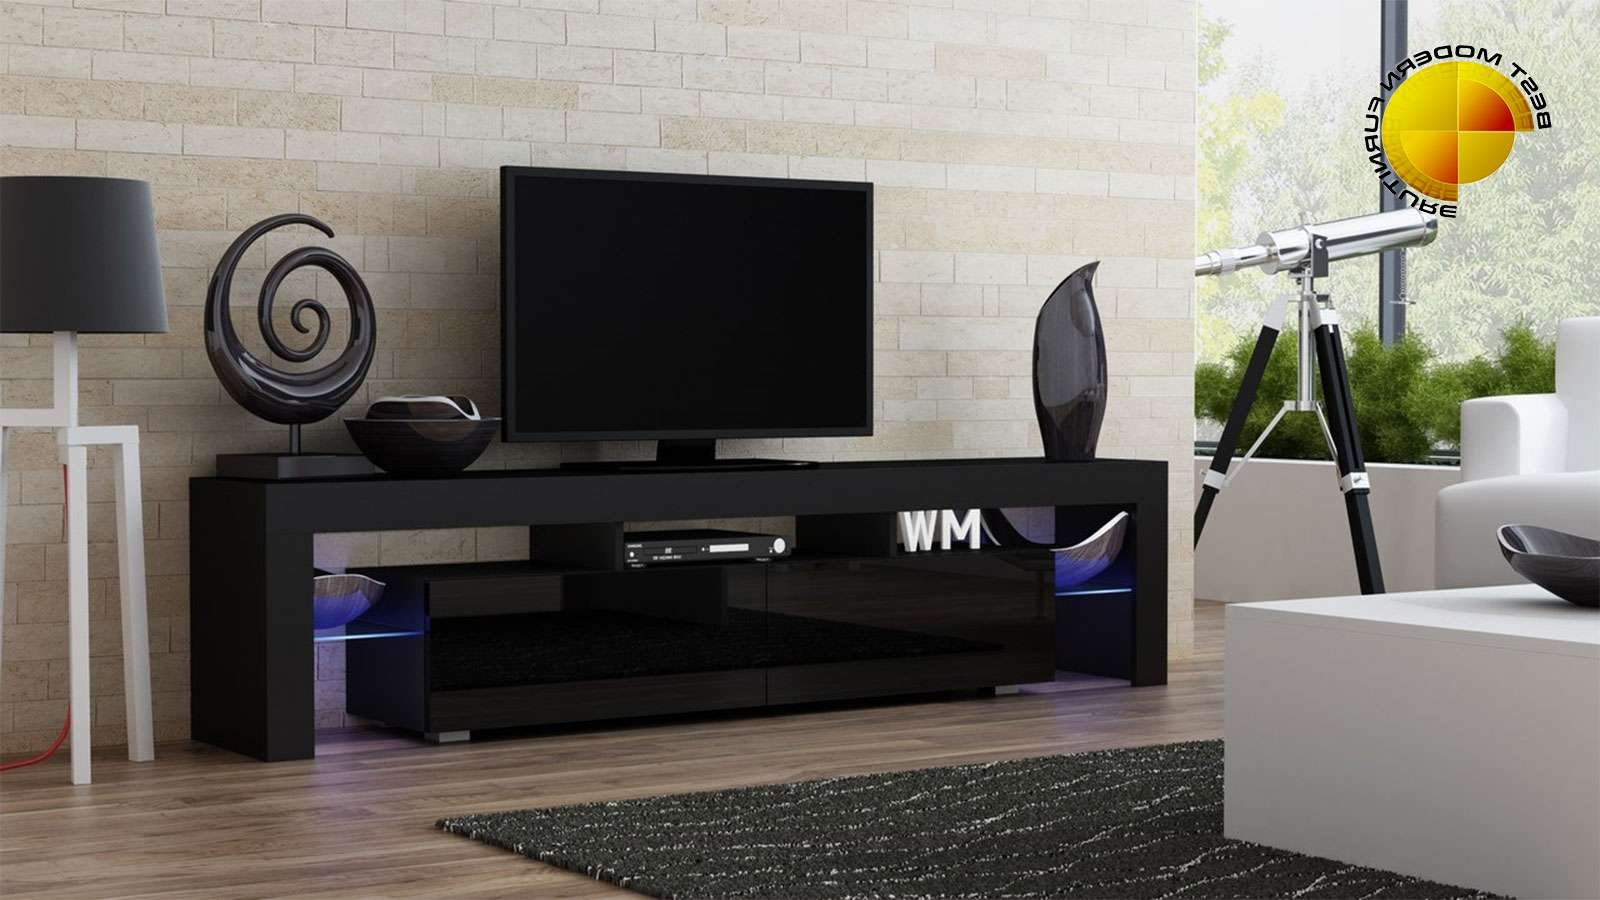 High Gloss Black Tv Cabinets – Imanisr With Regard To Shiny Black Tv Stands (View 7 of 15)